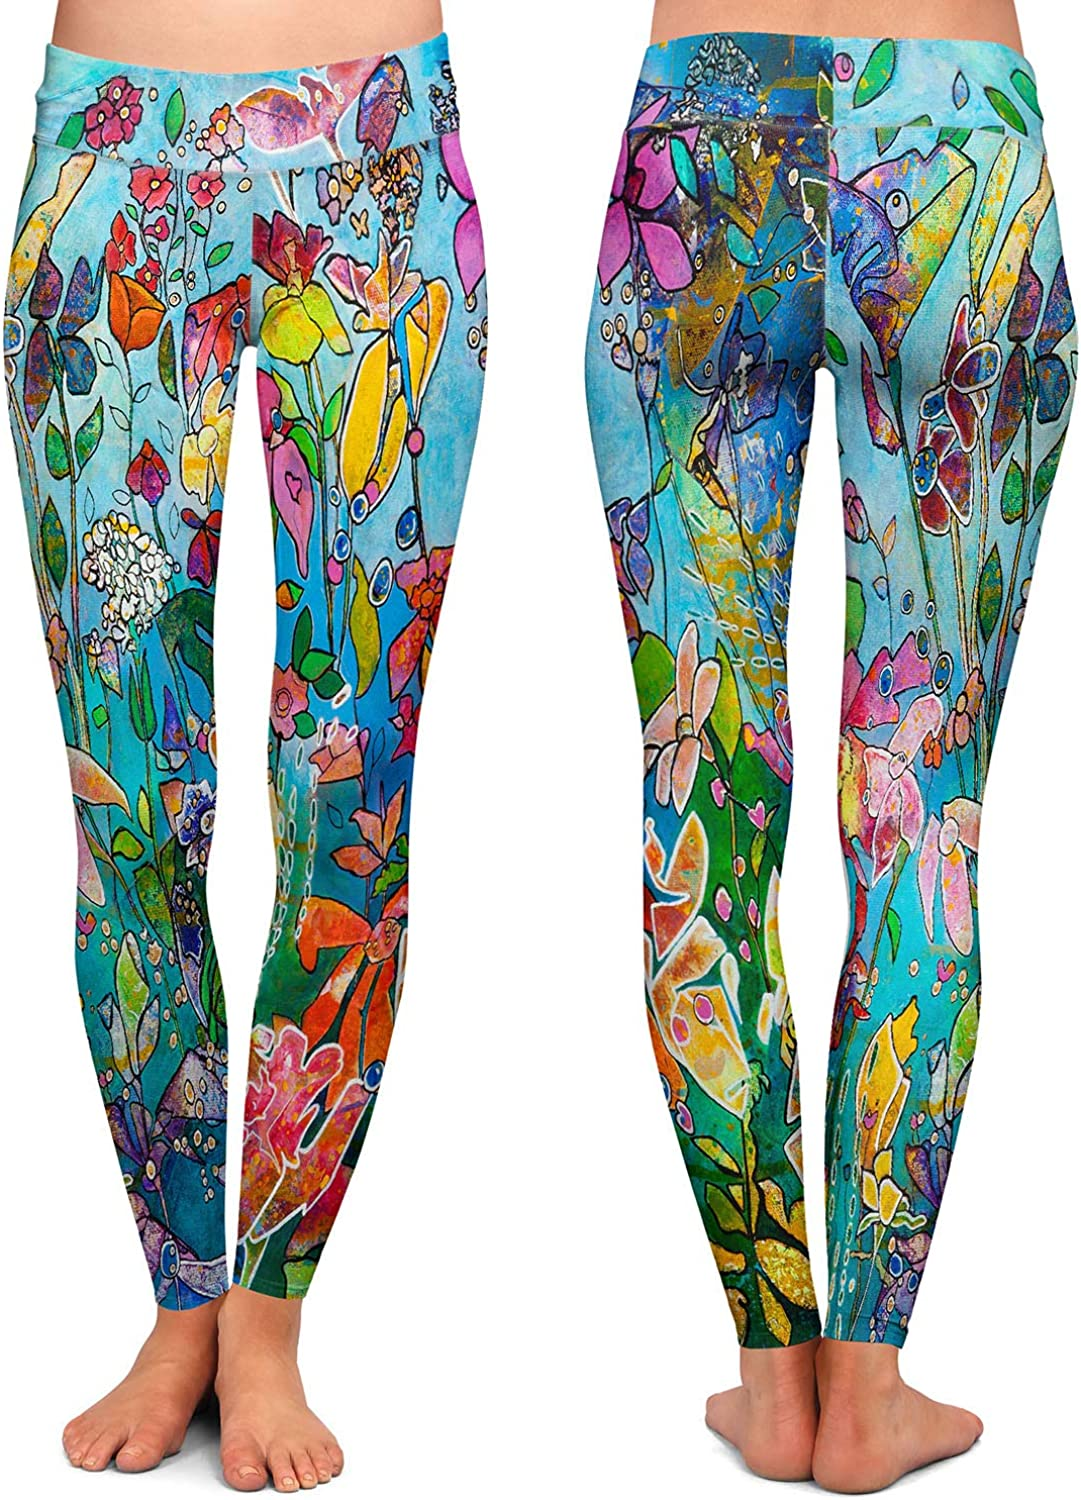 Diving in Flowers Athletic Yoga Leggings from DiaNoche Designs by Kim Ellery